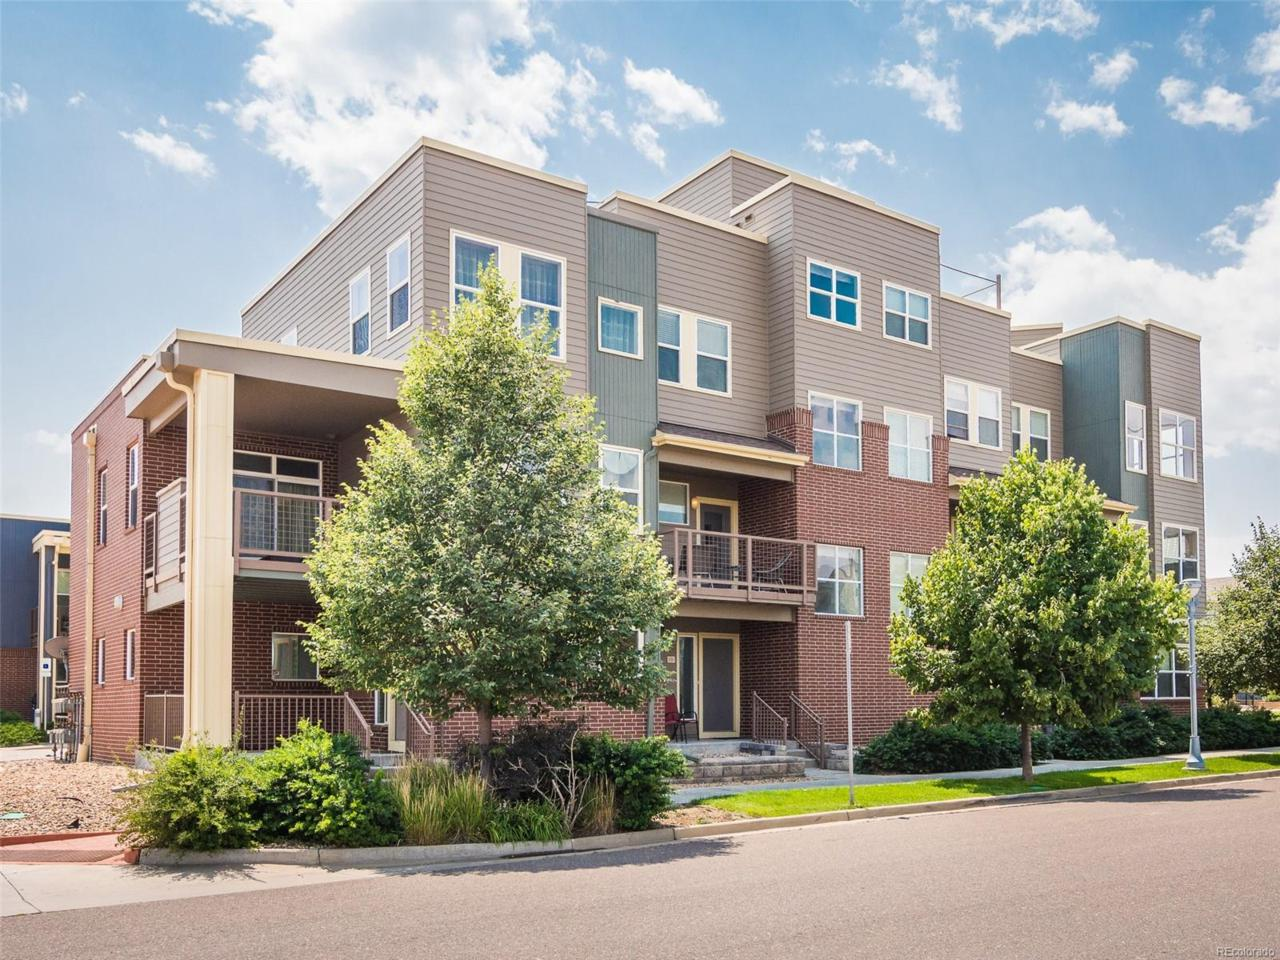 11351 Colony Circle, Broomfield, CO 80021 (MLS #3353548) :: 8z Real Estate